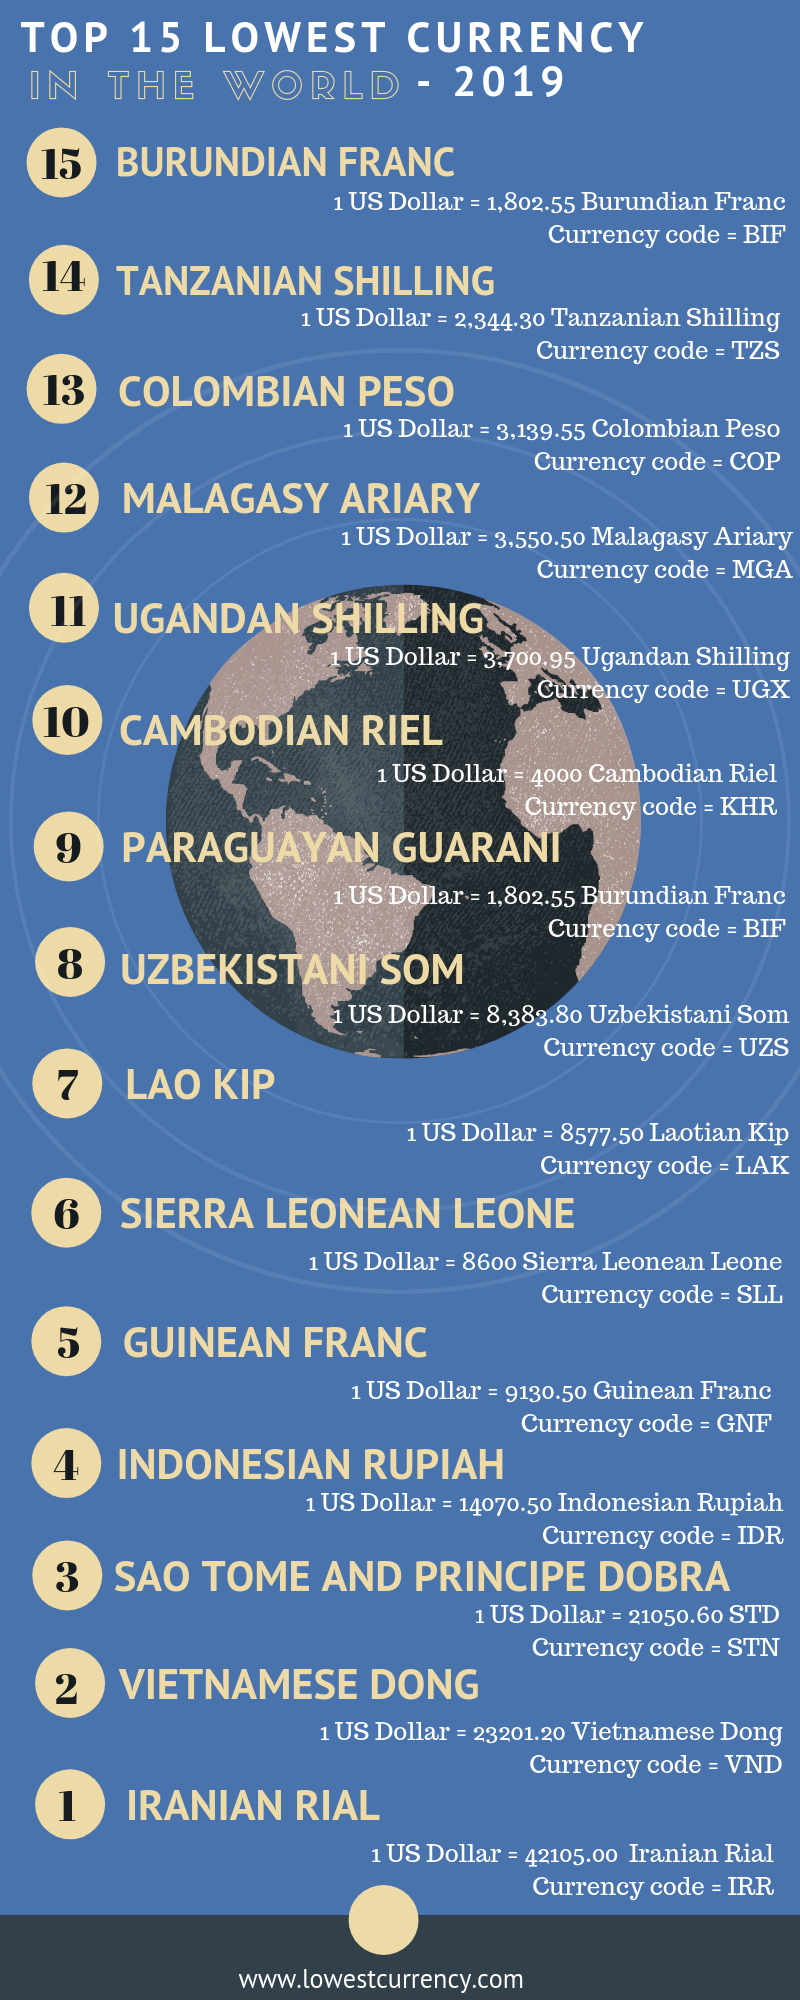 Top 15 least valued currency in the world in 2020 - Infographic